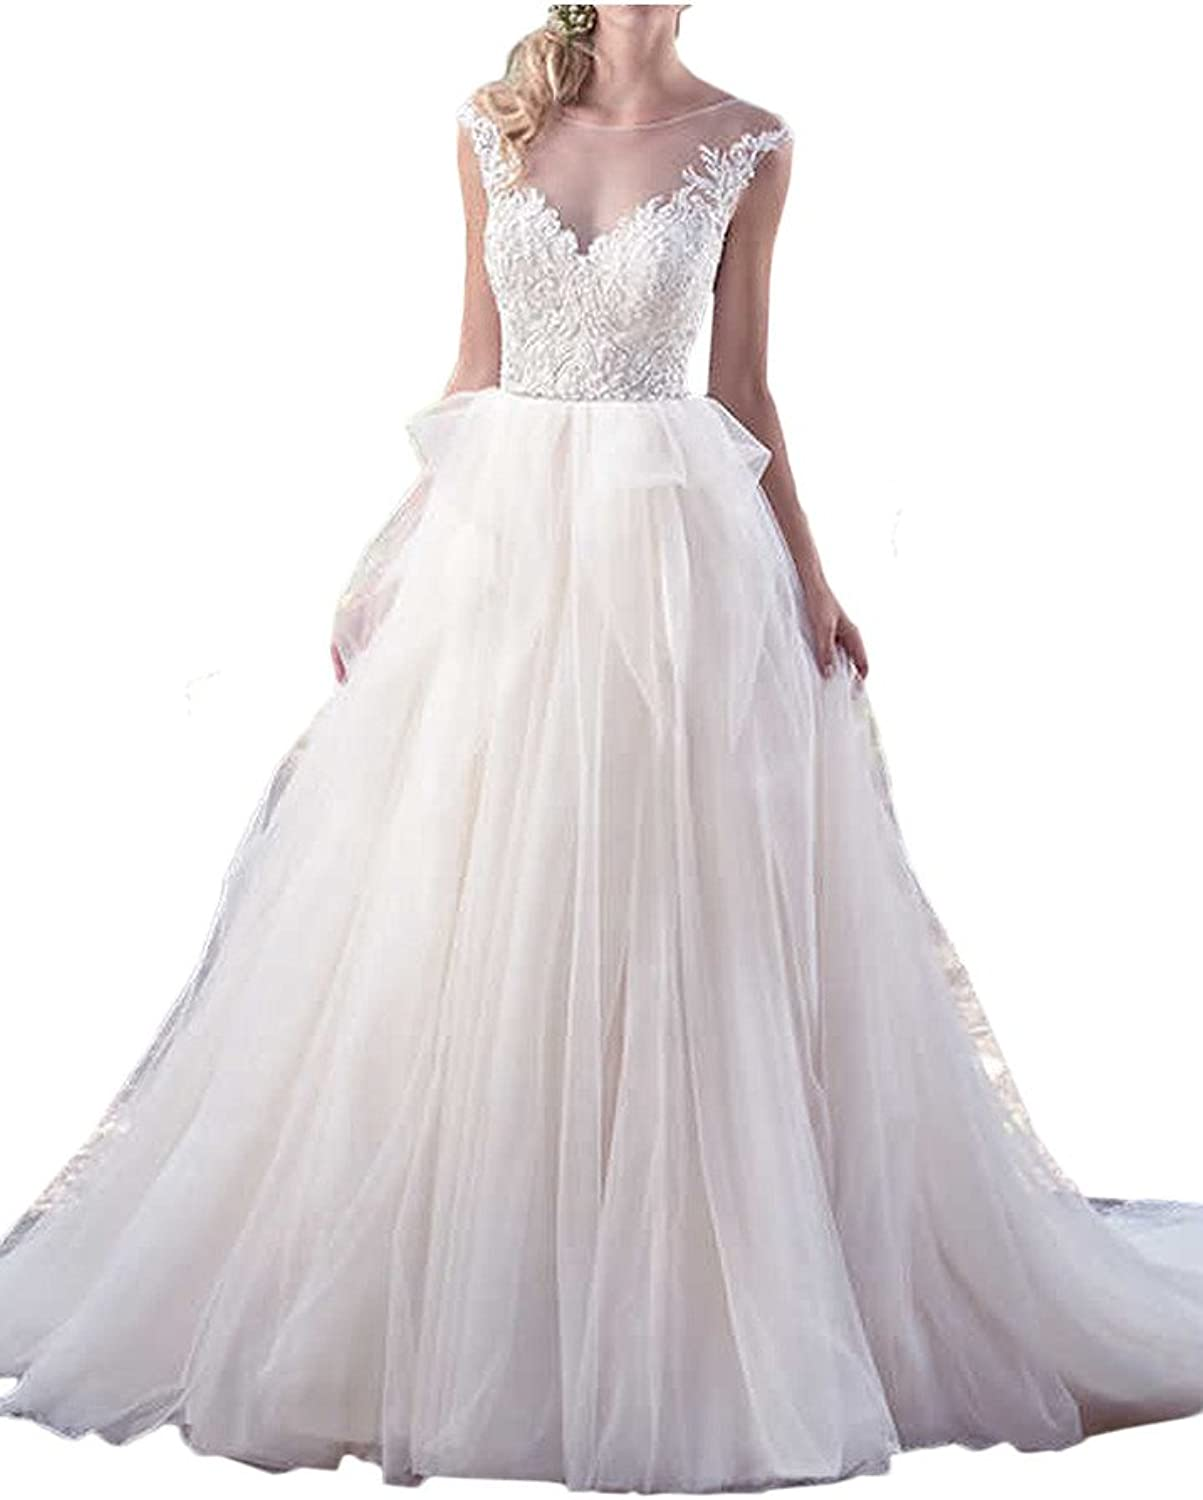 MILANO BRIDE Dreamy Bridal Dress For Wedding Applique Backless Ball Gown Tulle